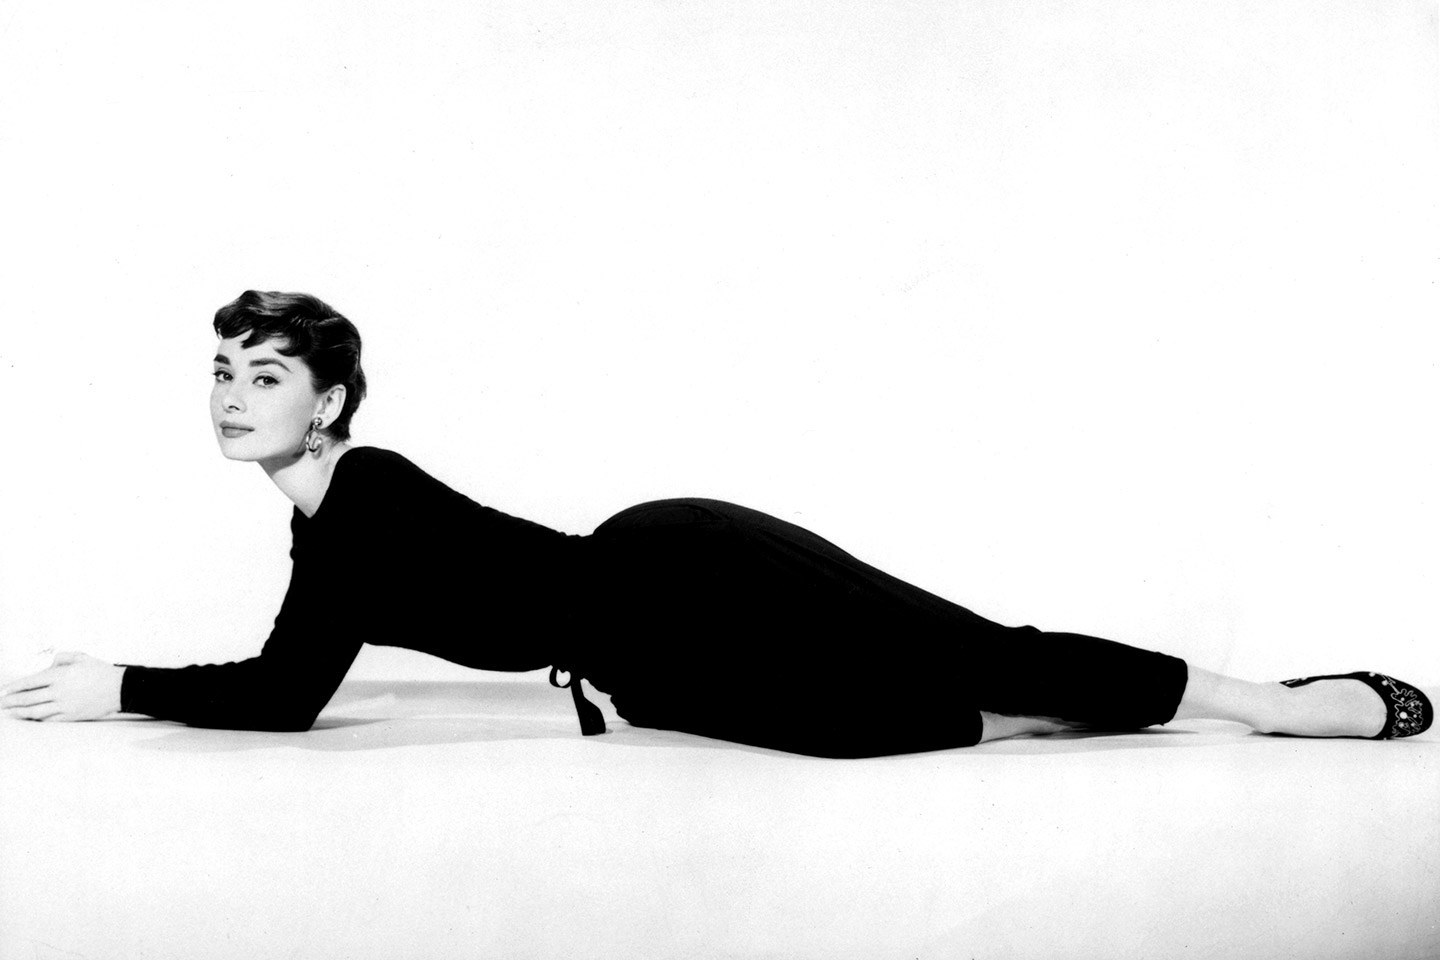 """Photo Credit: Moviepix / Getty Images   very week,VF.com staffers pick an iconic photograph and examine what really went on behind the shot. Today, we look at a 1954 photograph of Audrey Hepburn that furthered her role as an international style star and forged a lifelong friendship with a major French designer.   Before the diamonds and pearls of Breakfast at Tiffany's, there was the quietly seductive black pantsuit in  Sabrina . With a cinched waist and embellished flats, starlet Audrey Hepburn took a simple promotional film photo and made it one of the most talked about outfits of 1954.  Photographed by Bud Fraker, former department head of still photography at Paramount Pictures, Hepburn lounged with a knowing smile—although she probably couldn't predict the universal acclaim and Academy Award nomination her performance in Sabrina would gain.  The design lines are blurry as to who originally created the black pantsuit. The idea probably stemmed from a combination of the legendary head of the studio's wardrobe department, Edith Head, and the then-young-designer  Hubert de Givenchy, whose French fashion house was founded two years prior. Over multiple fittings, a friendship between Hepburn and Givenchy blossomed.  """"Little by little, our friendship grew and with it a confidence in each other,"""" Givenchy  told the  Telegraph.    Much to Hepburn's chagrin, Givenchy never got the recognition he deserved for his Sabrina creations: """"[Sabrina] won an Oscar for the dresses but I didn't get any credit,"""" Givenchy said to the  The Wall Street Journal.  """"She was furious. She demanded 'Each time I'm in a film, Givenchy dresses me.'""""  After working together for several more movies, including  Funny Face, Breakfast at Tiffany's , and  How to Steal a Million , they began to consider each other not just friends, but family. Hepburn referred to him as her big brother, and Givenchy said that their relationship  was """"a kind of marriage.""""   She would call """"just to tell me how much she l"""